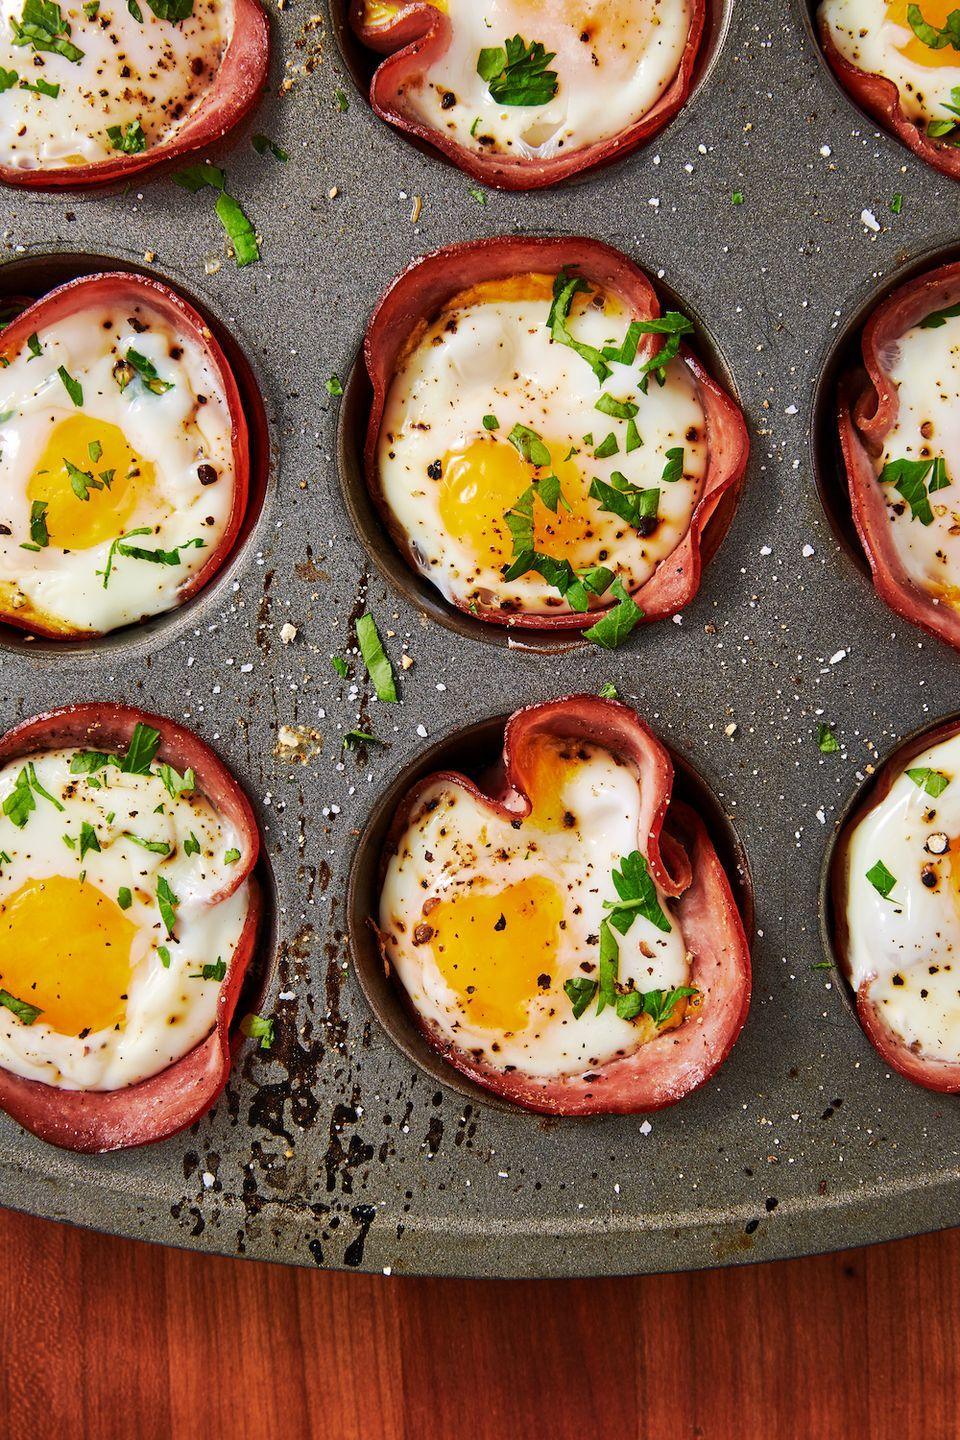 "<p>Breakfast in a bite!</p><p>Get the recipe from <a href=""https://www.delish.com/cooking/recipe-ideas/recipes/a50901/ham-cheese-egg-cups-recipe/"" rel=""nofollow noopener"" target=""_blank"" data-ylk=""slk:Delish"" class=""link rapid-noclick-resp"">Delish</a>.</p>"